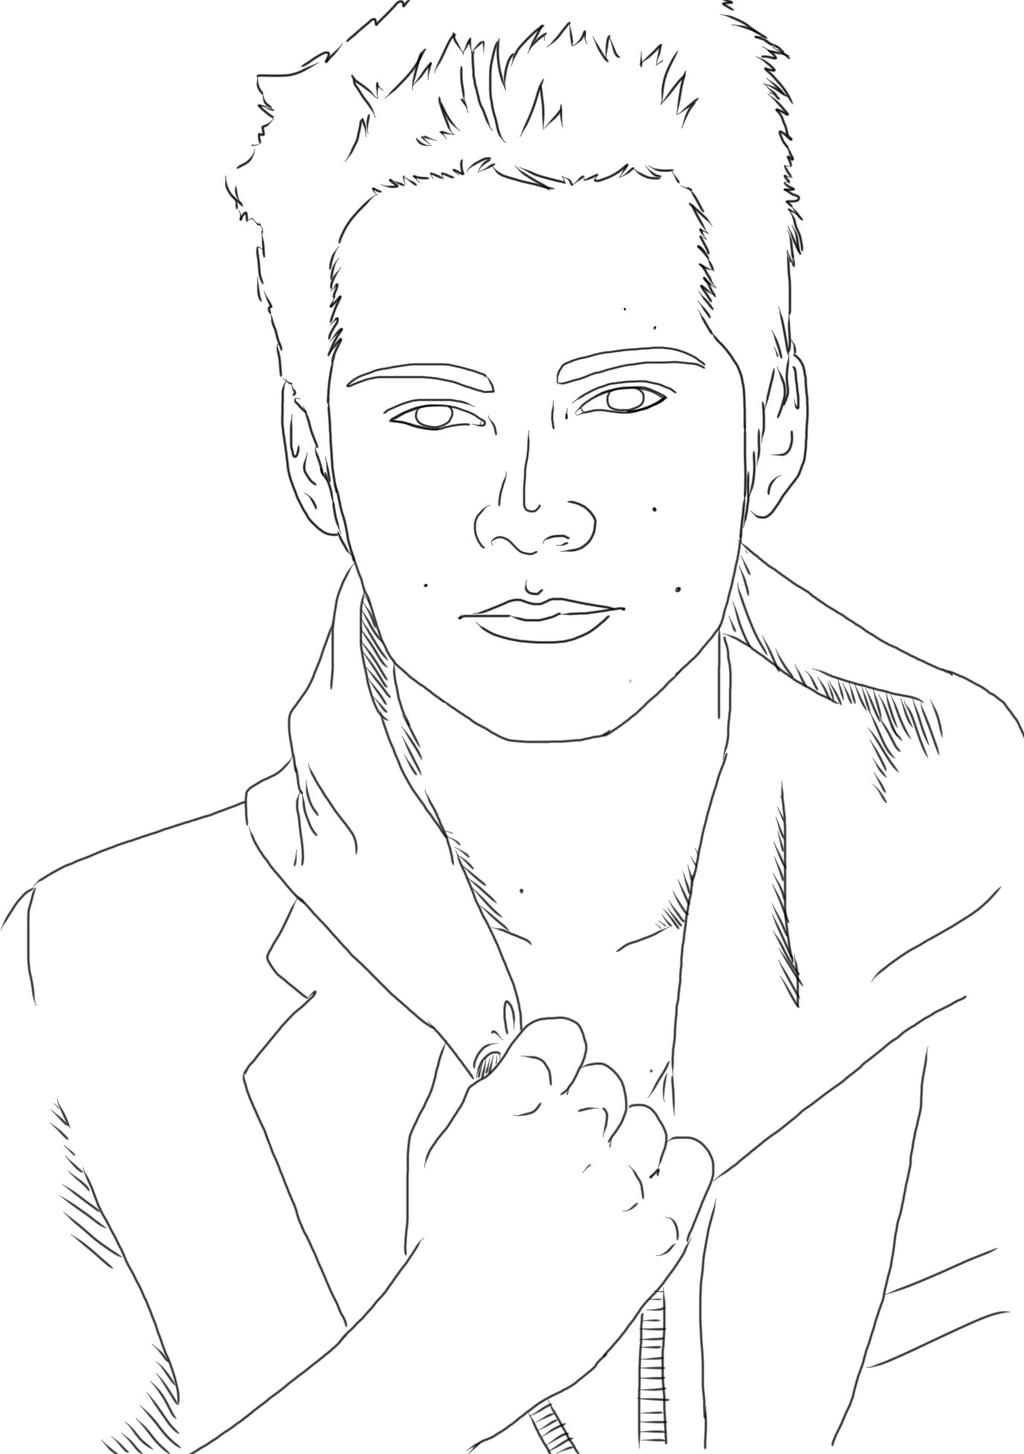 dylan coloring pages - photo#32